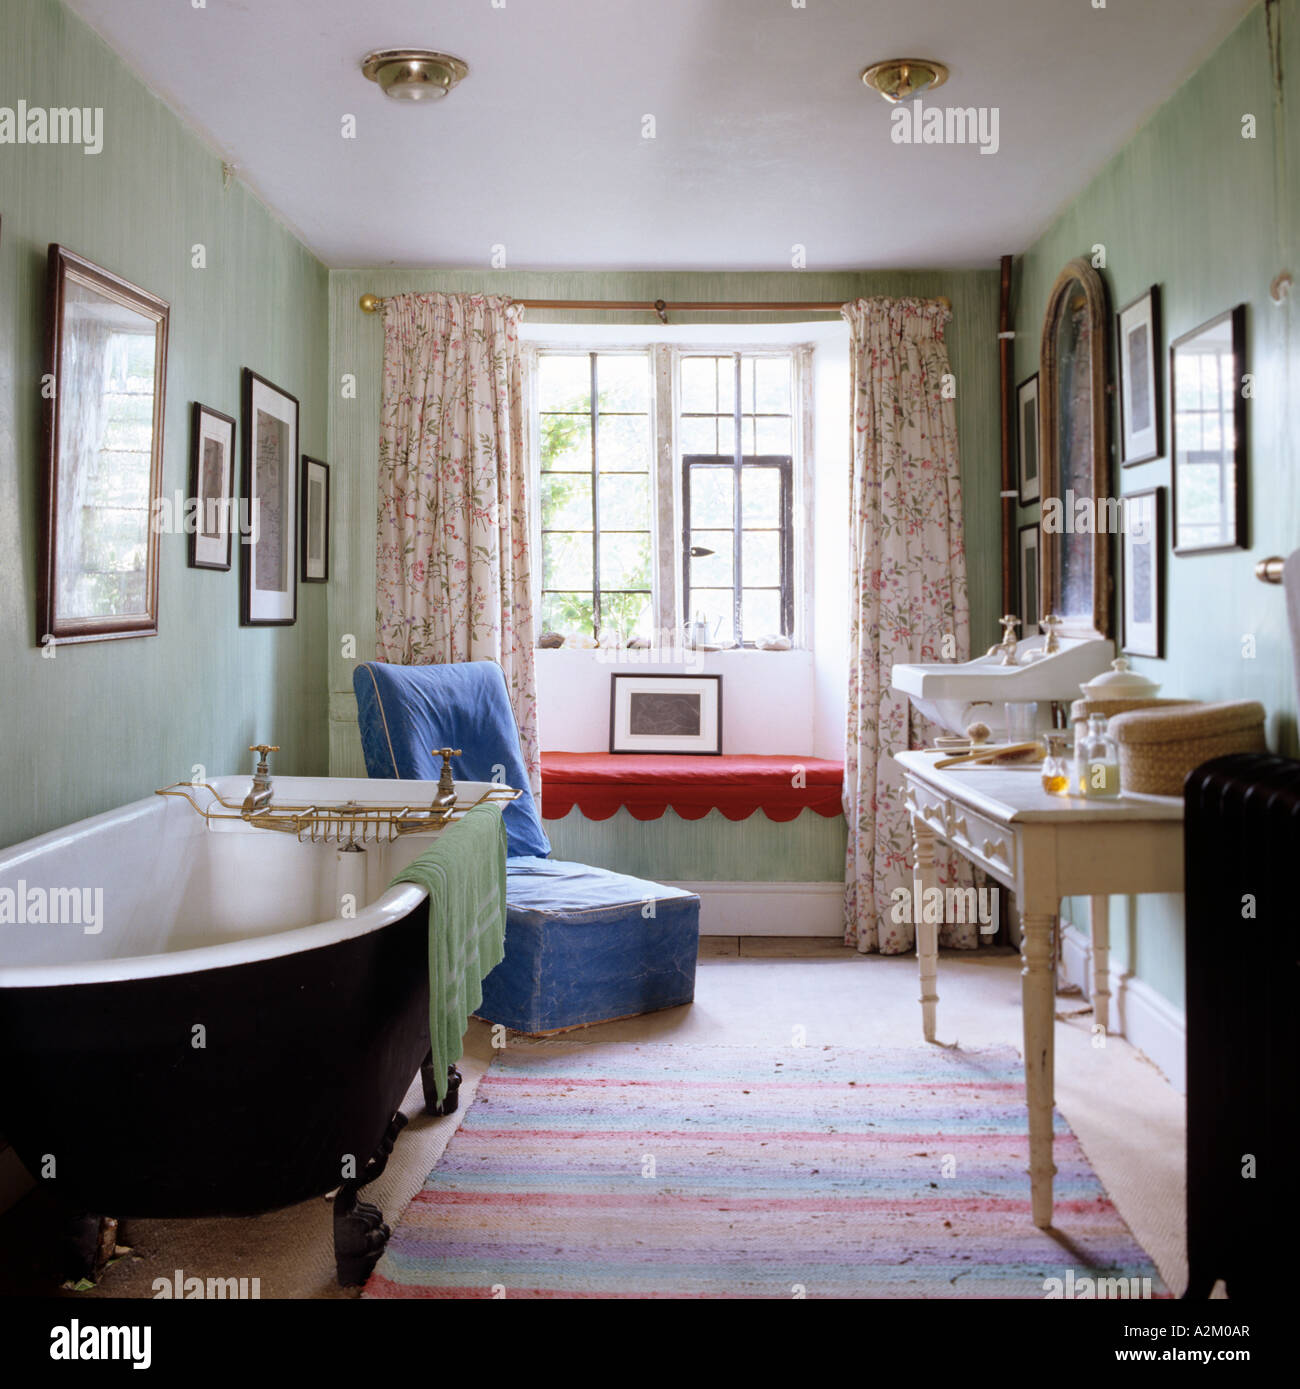 Bathroom with freestanding bathtub, dressing table and old fashioned ...